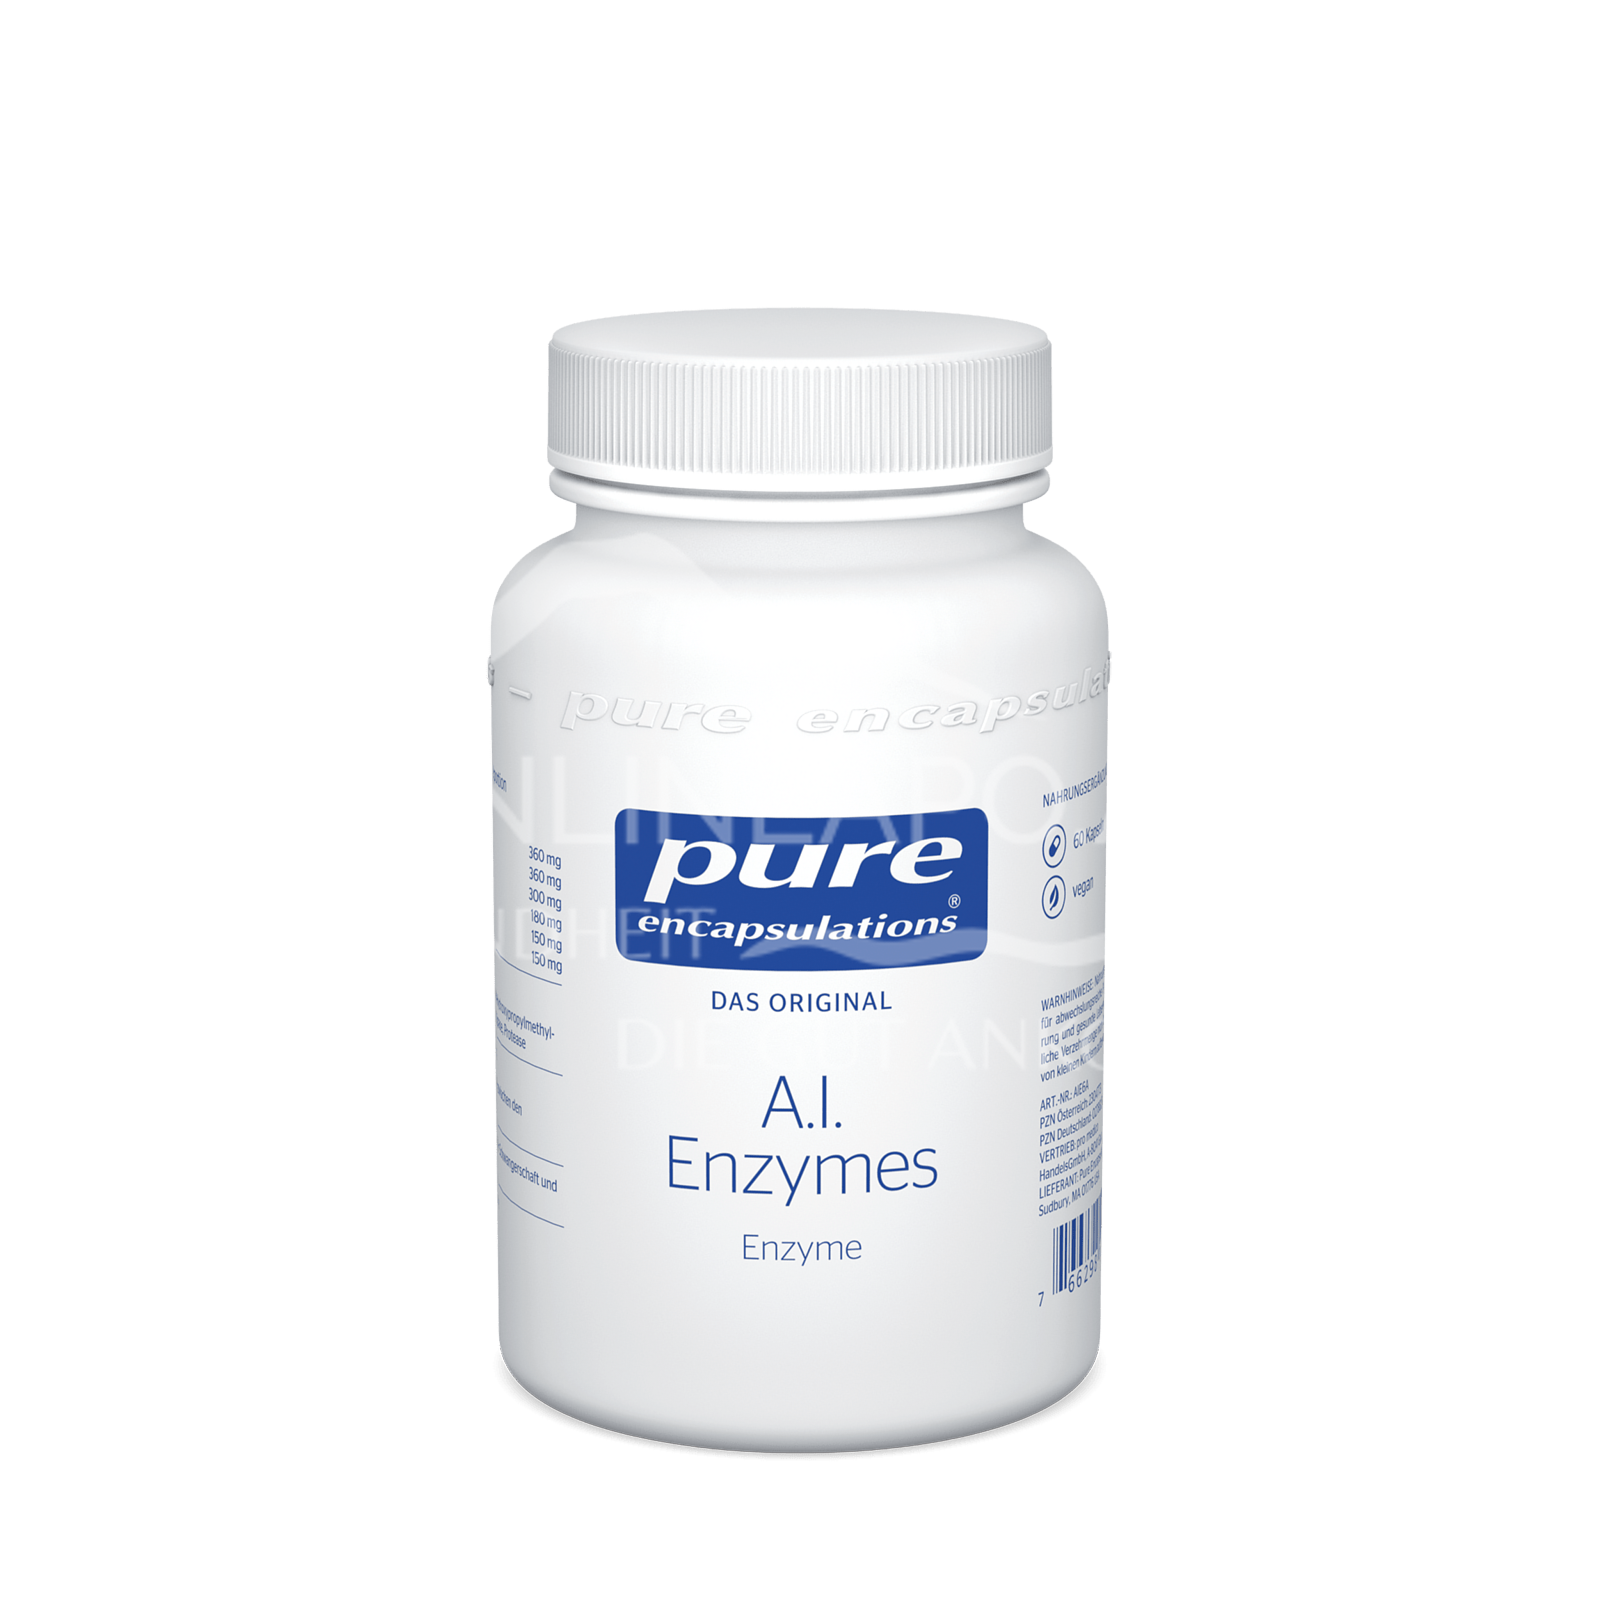 pure encapsulations® A.I. Enzymes